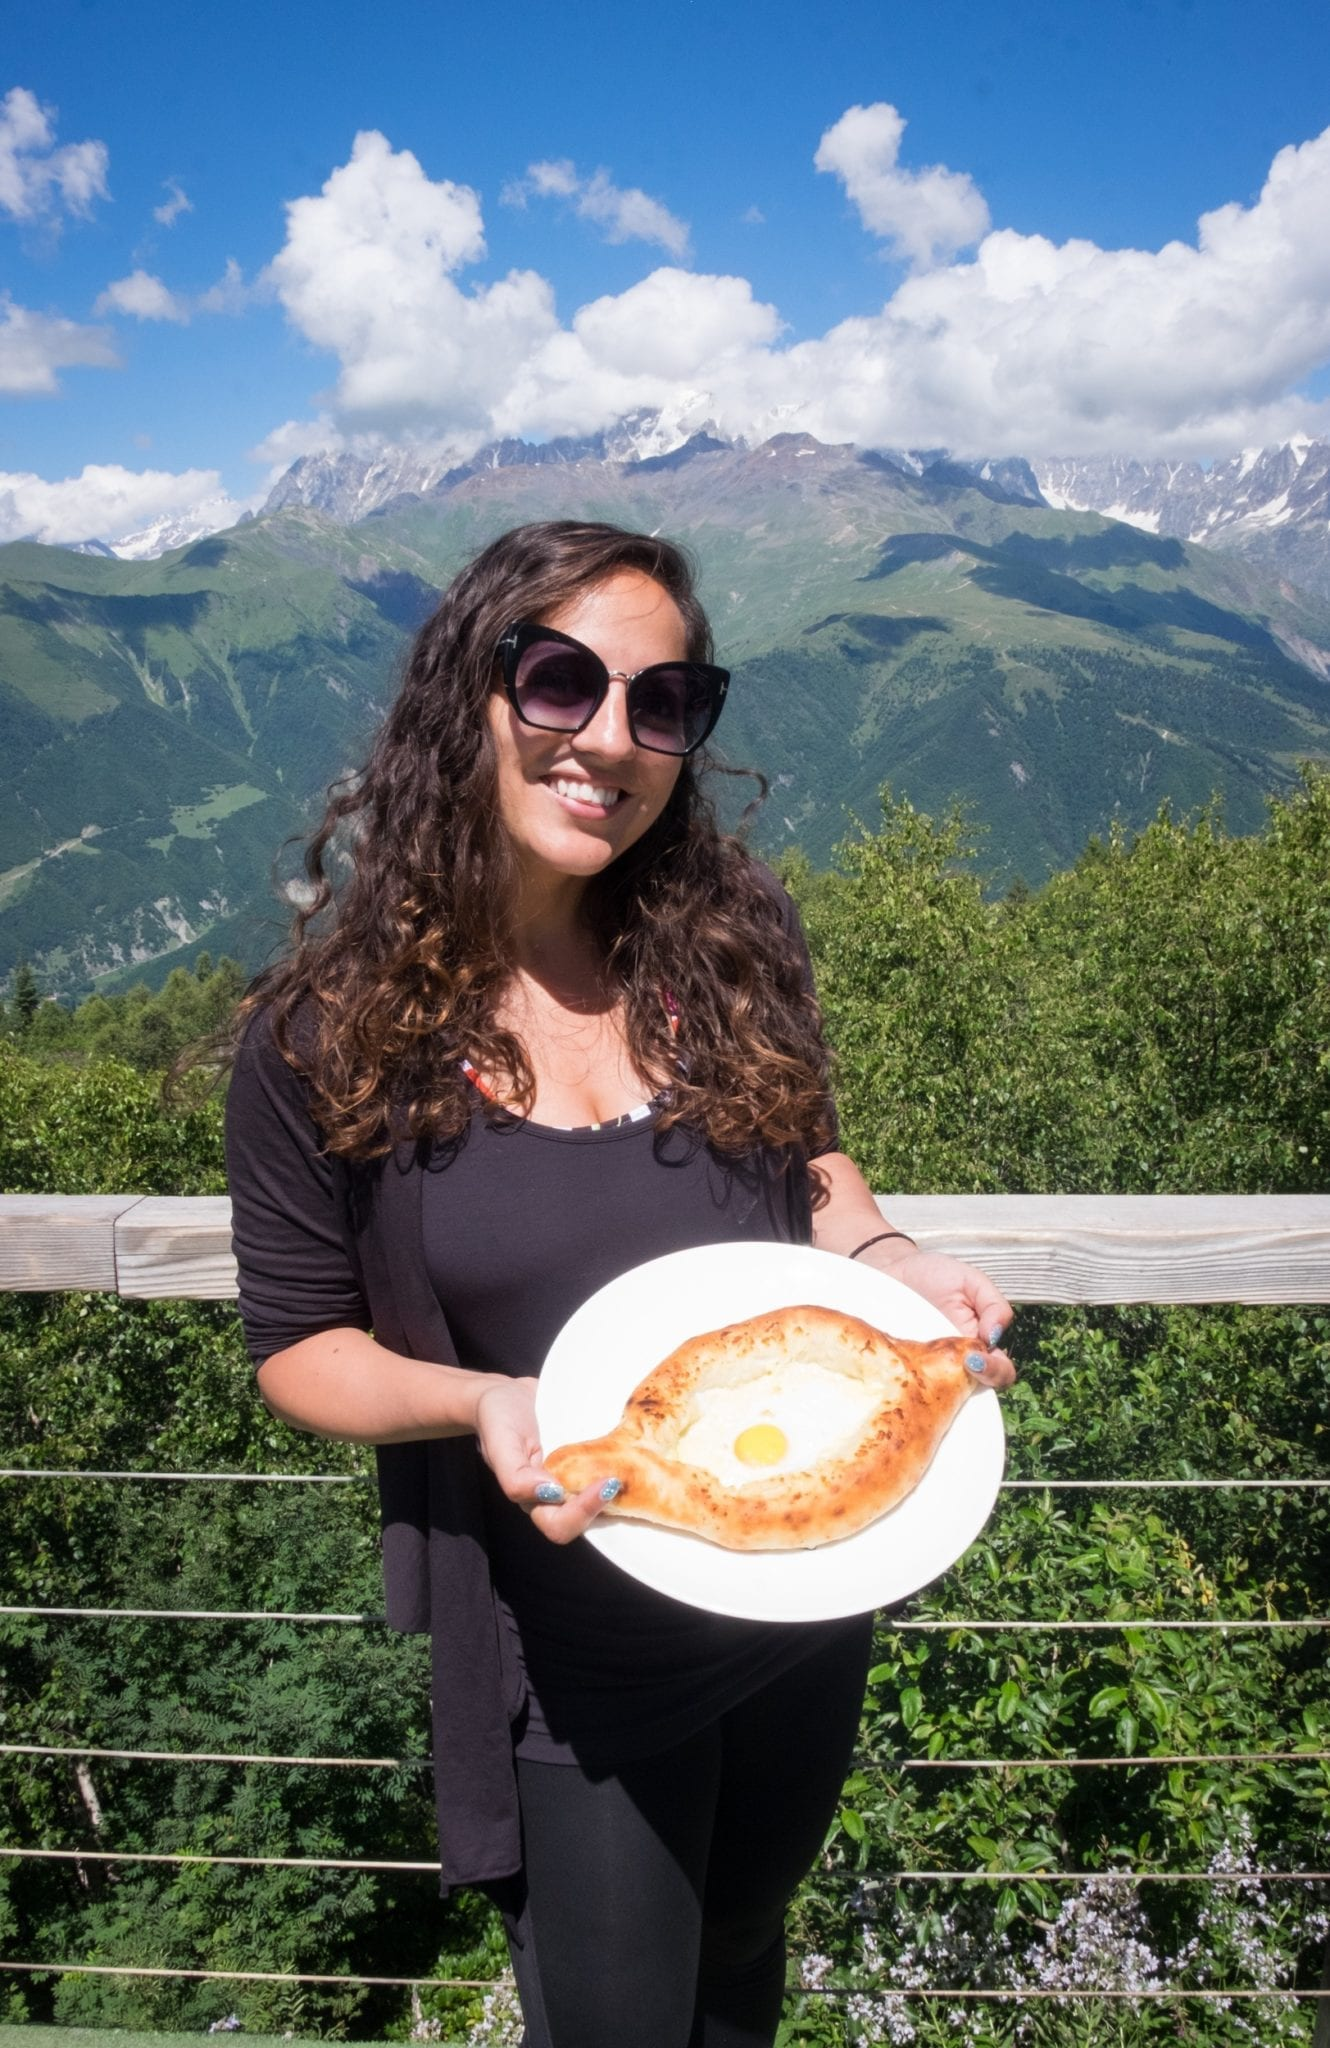 Kate stands in front of a Mountain View and holds a plate topped with a khachapuri -- a boat-shaped bread pastry with cheese and a fried egg on top.